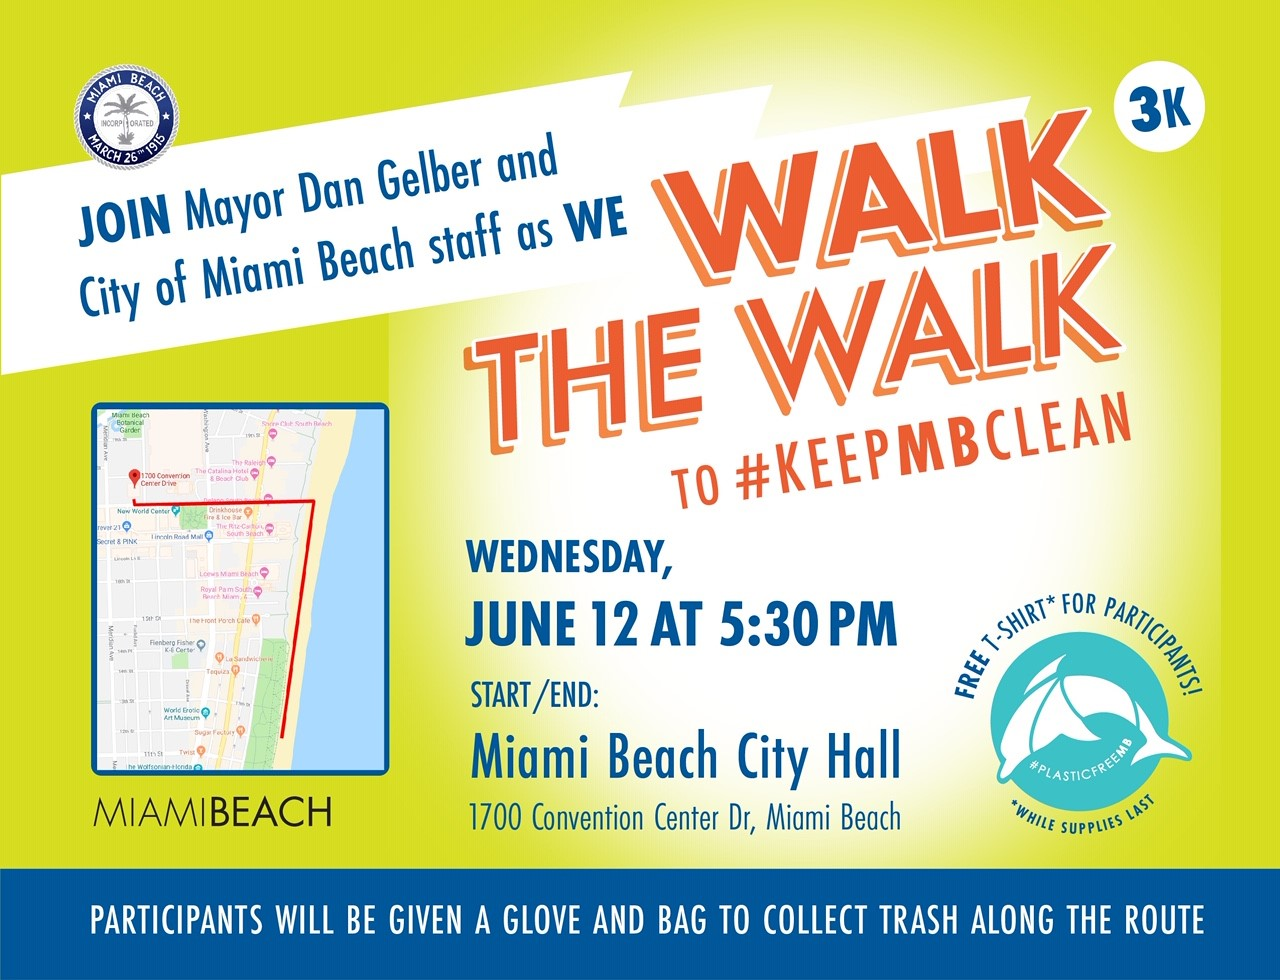 Walk the Walk to #KeepMBClean.